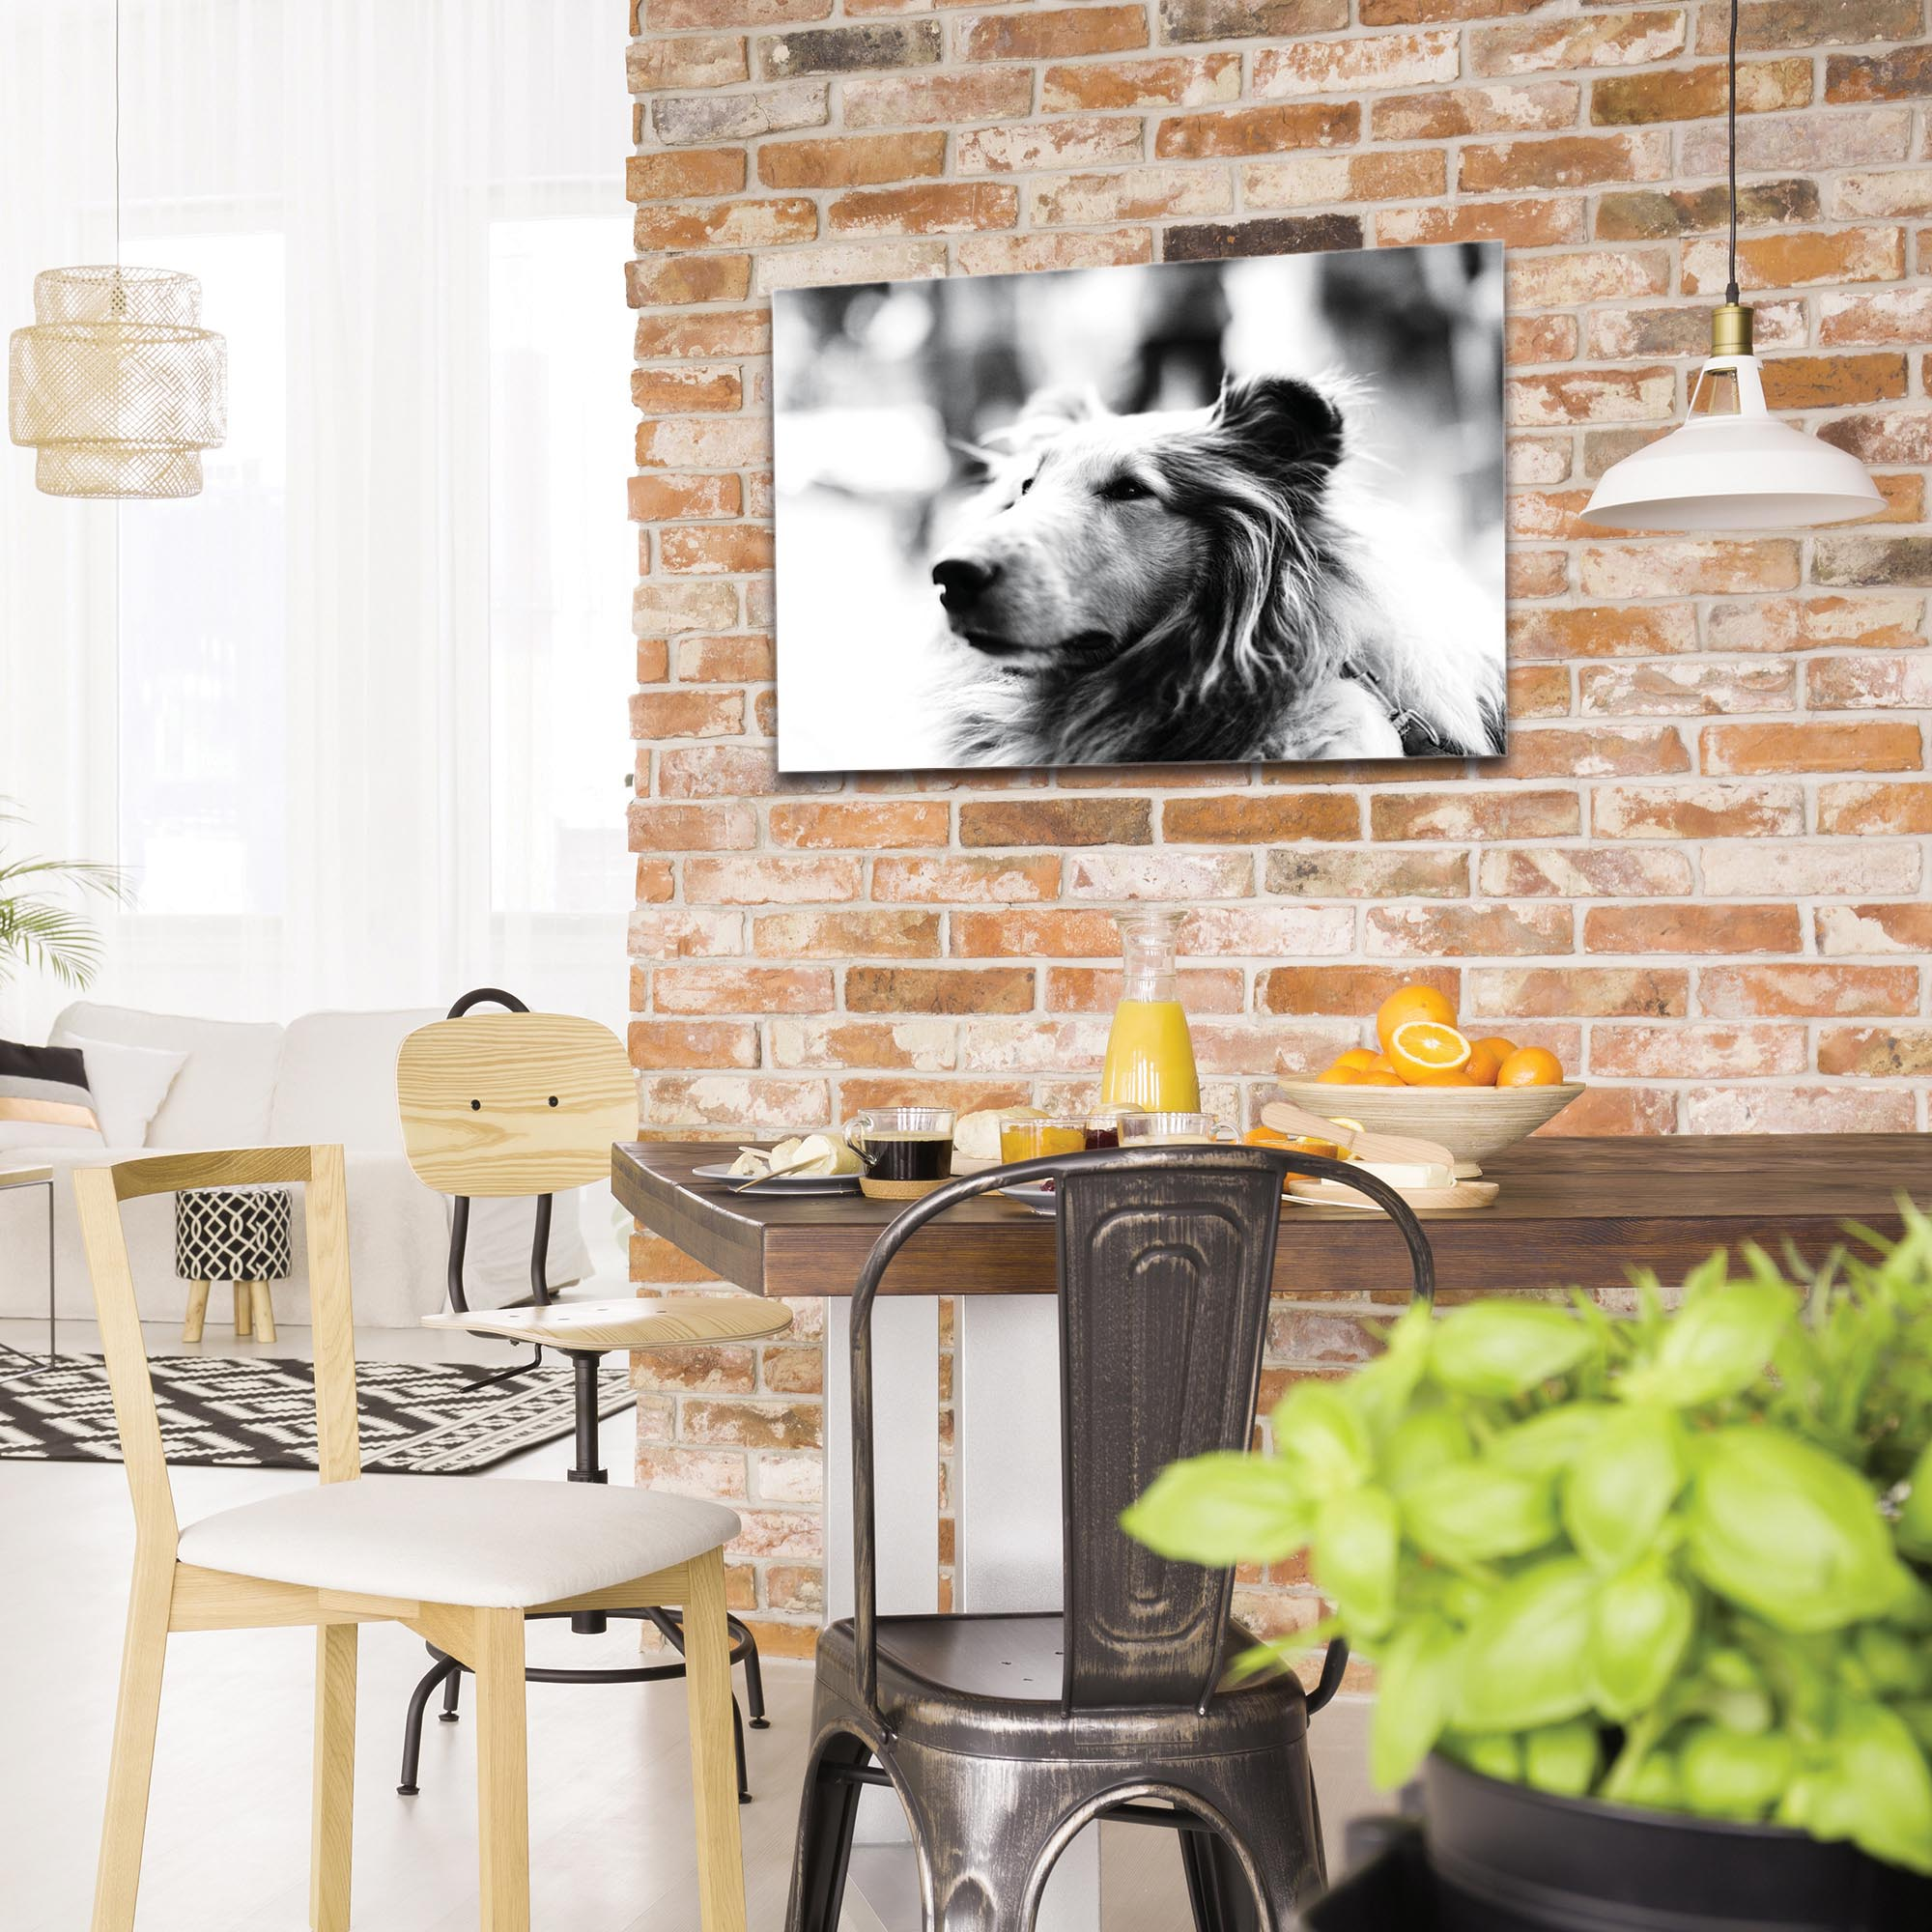 Casual Wall Art 'Loyal Friend' - Wildlife Decor on Metal or Plexiglass - Image 3